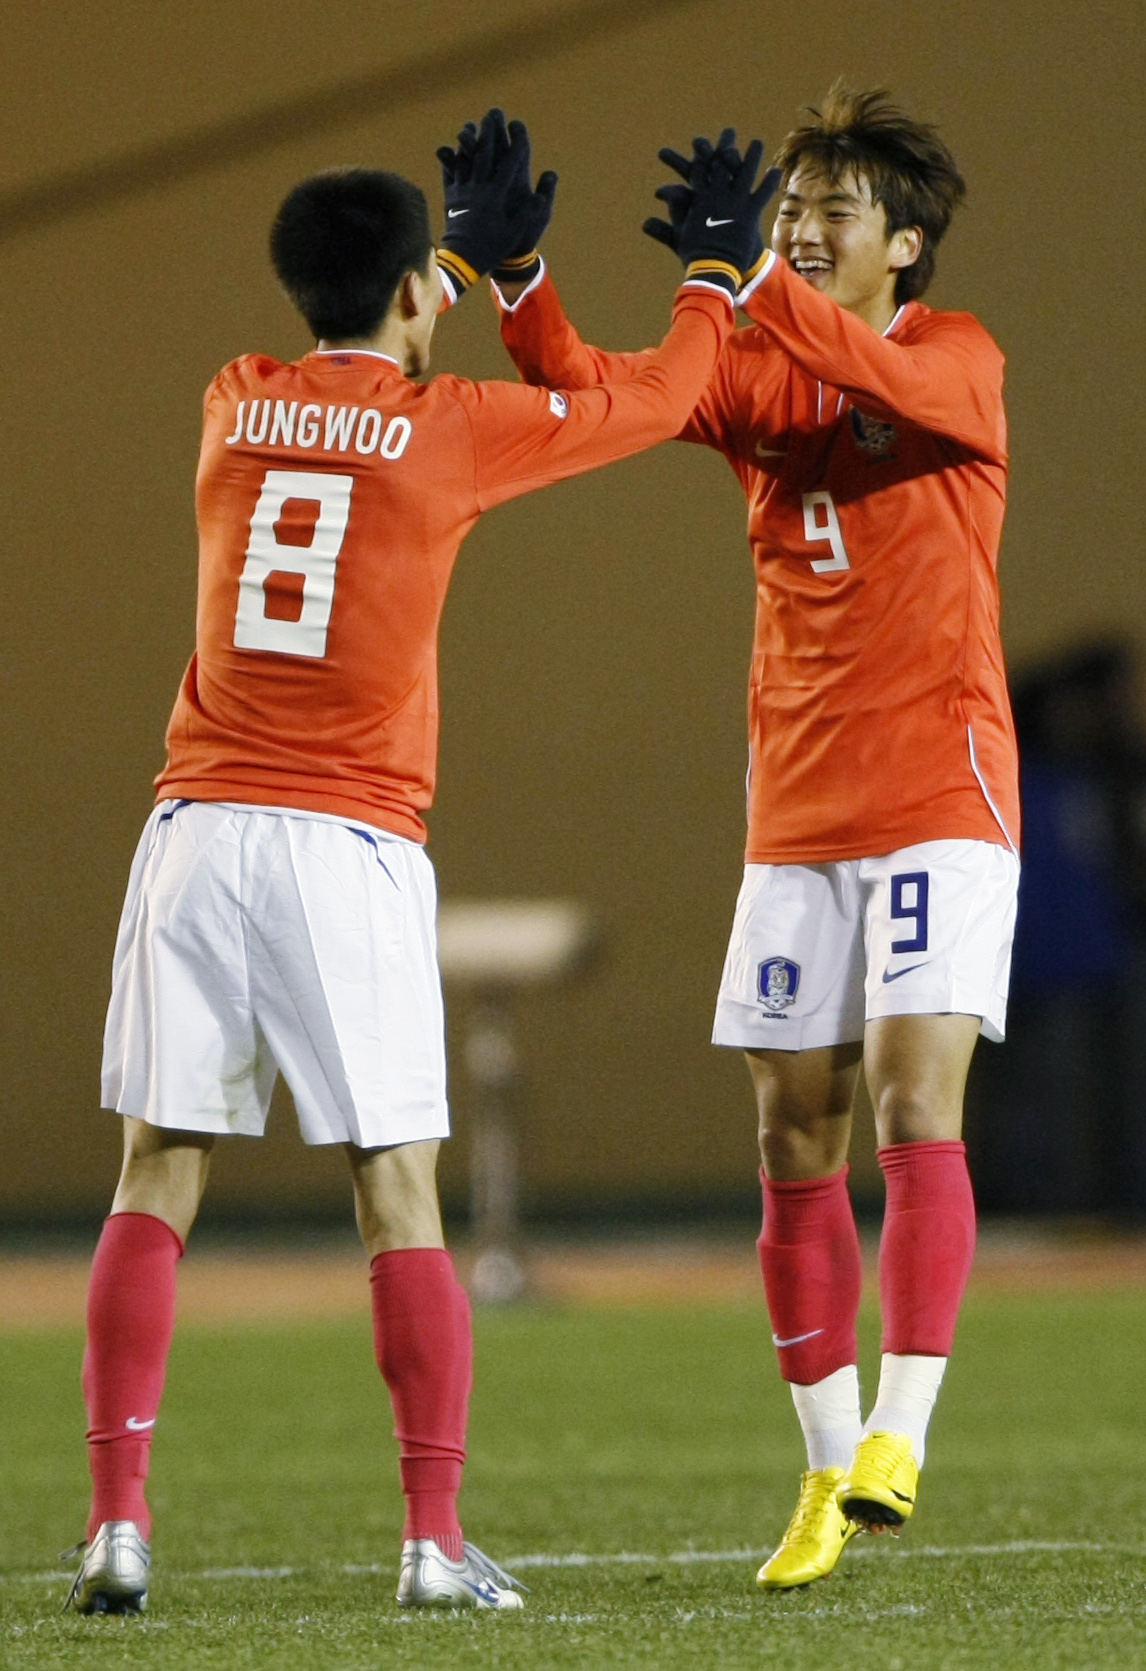 South Korea's Lee Seung-yeoul (R) celebrates with teammate Kim Jung-woo after scoring a goal against Hong Kong during their East Asian Championship soccer match in Tokyo February 7, 2010.